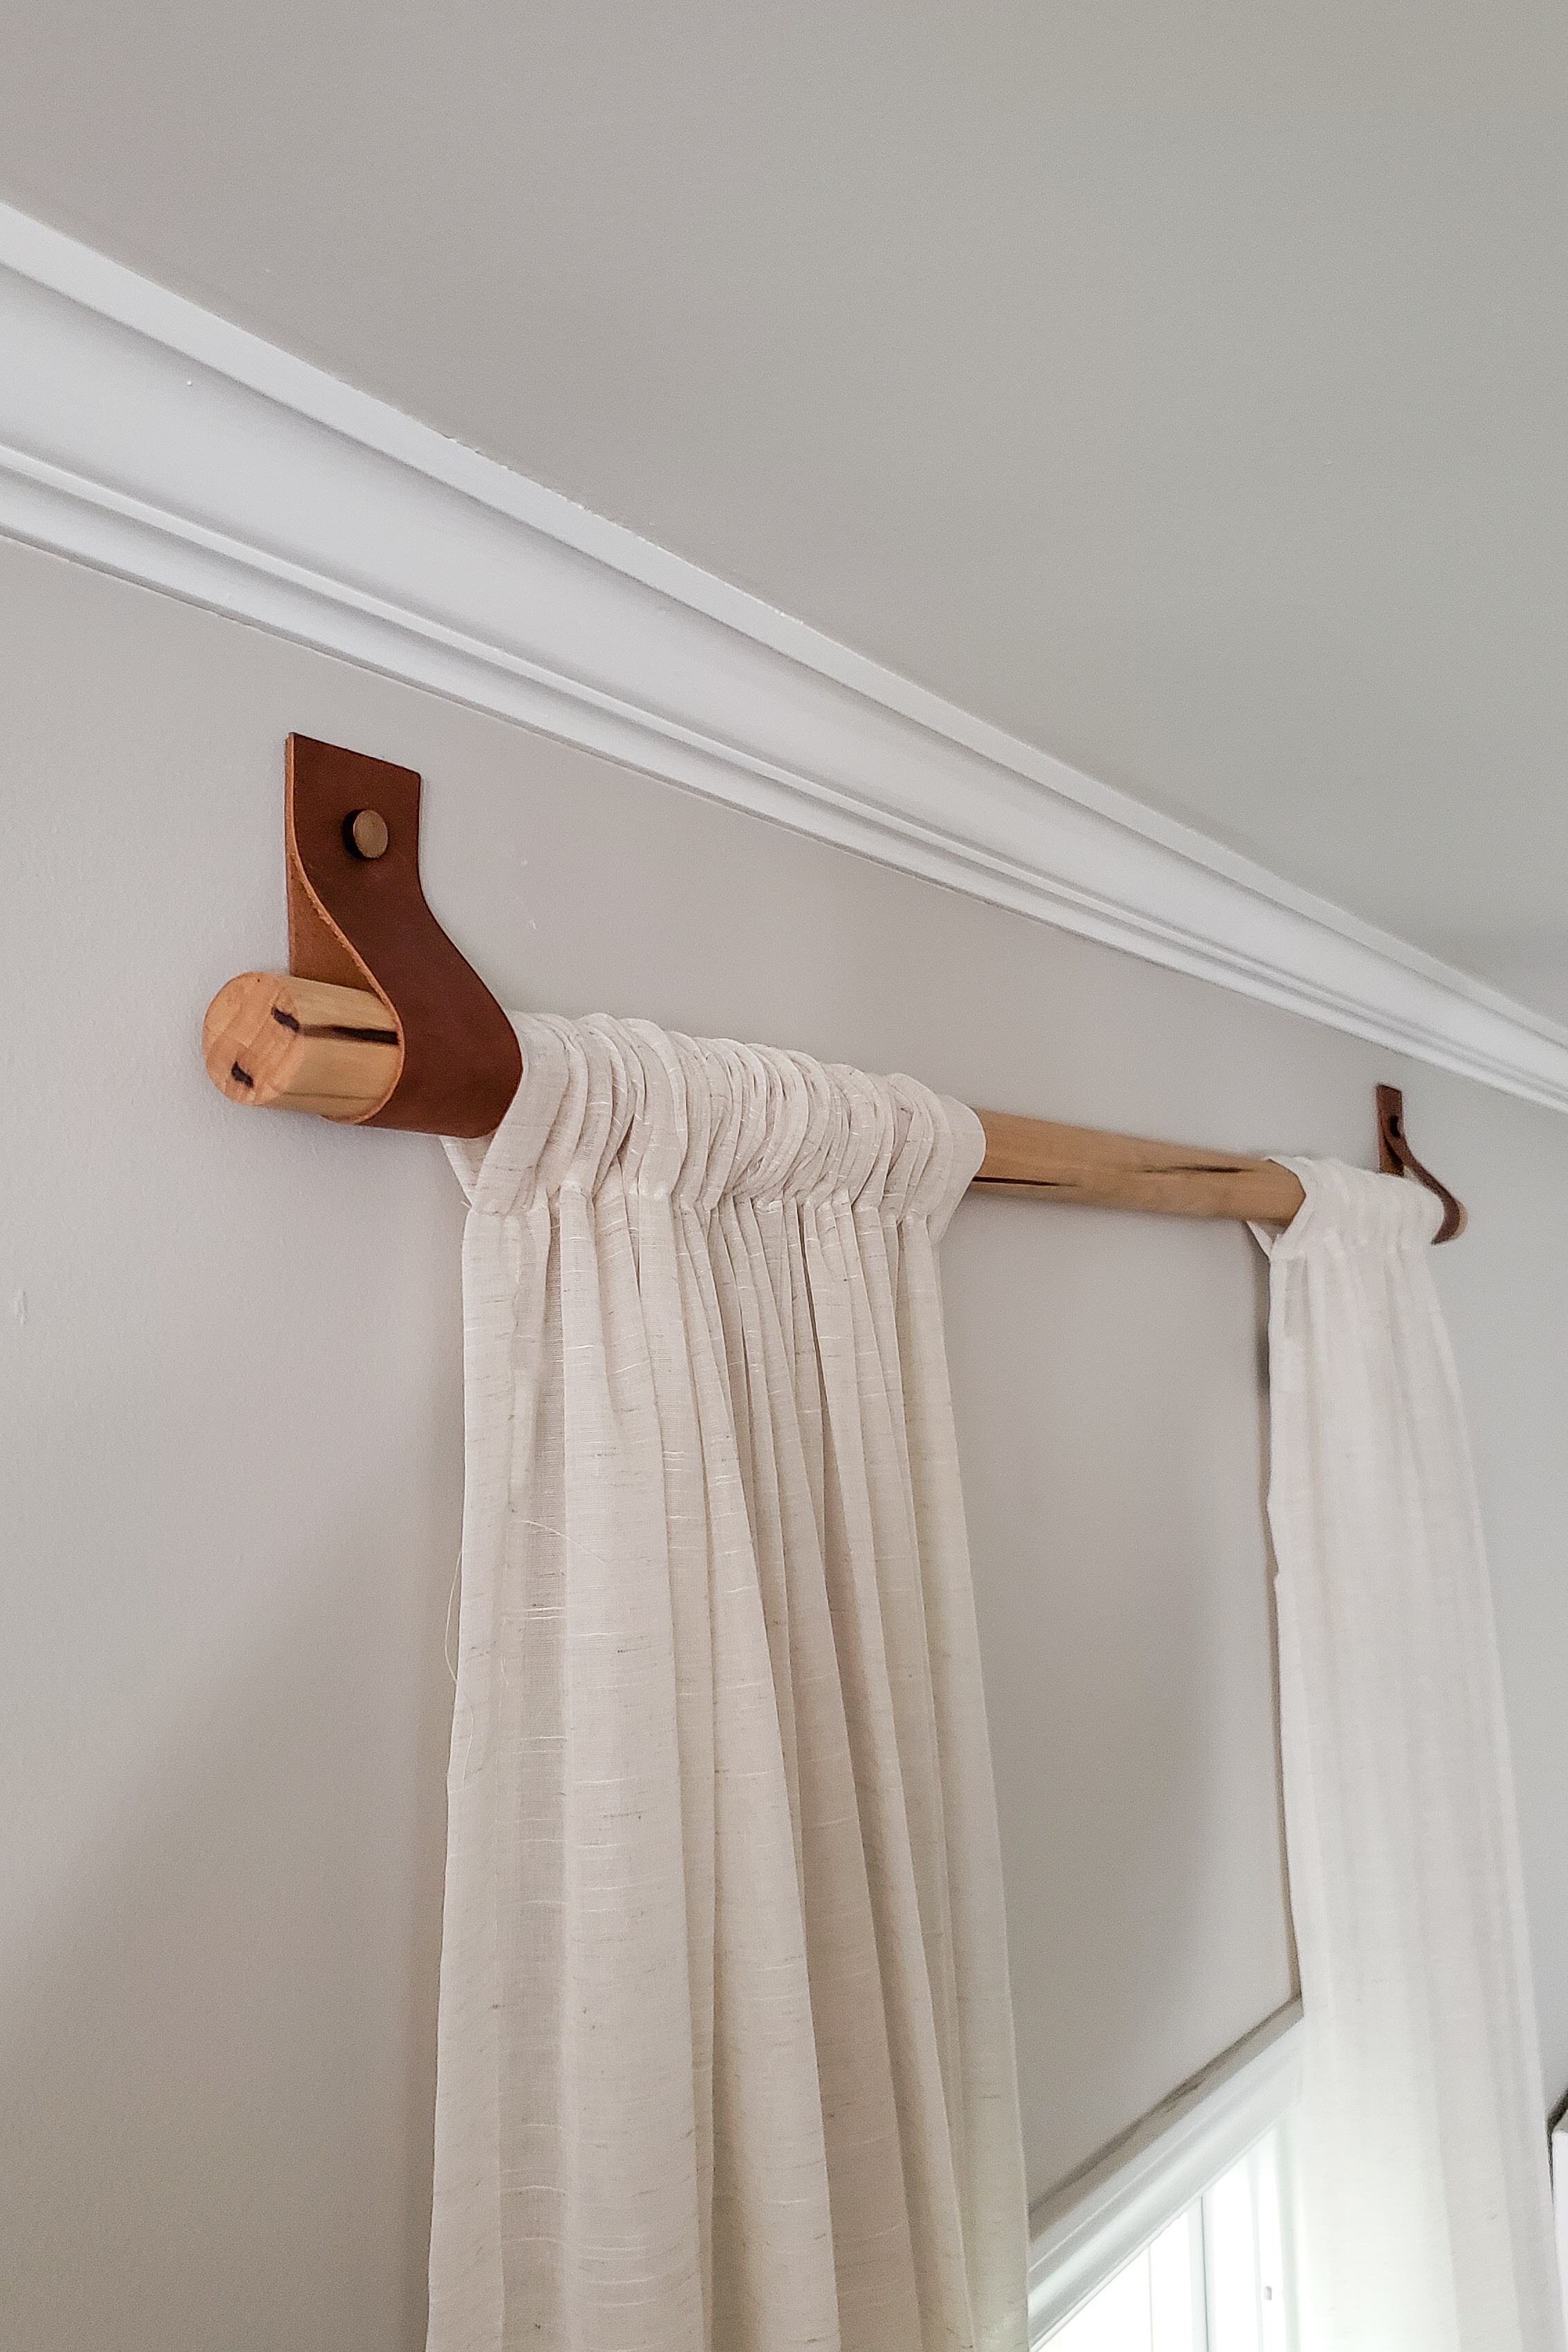 Diy Wood Curtain Rods With Leather Straps For Under 10 Dani Koch